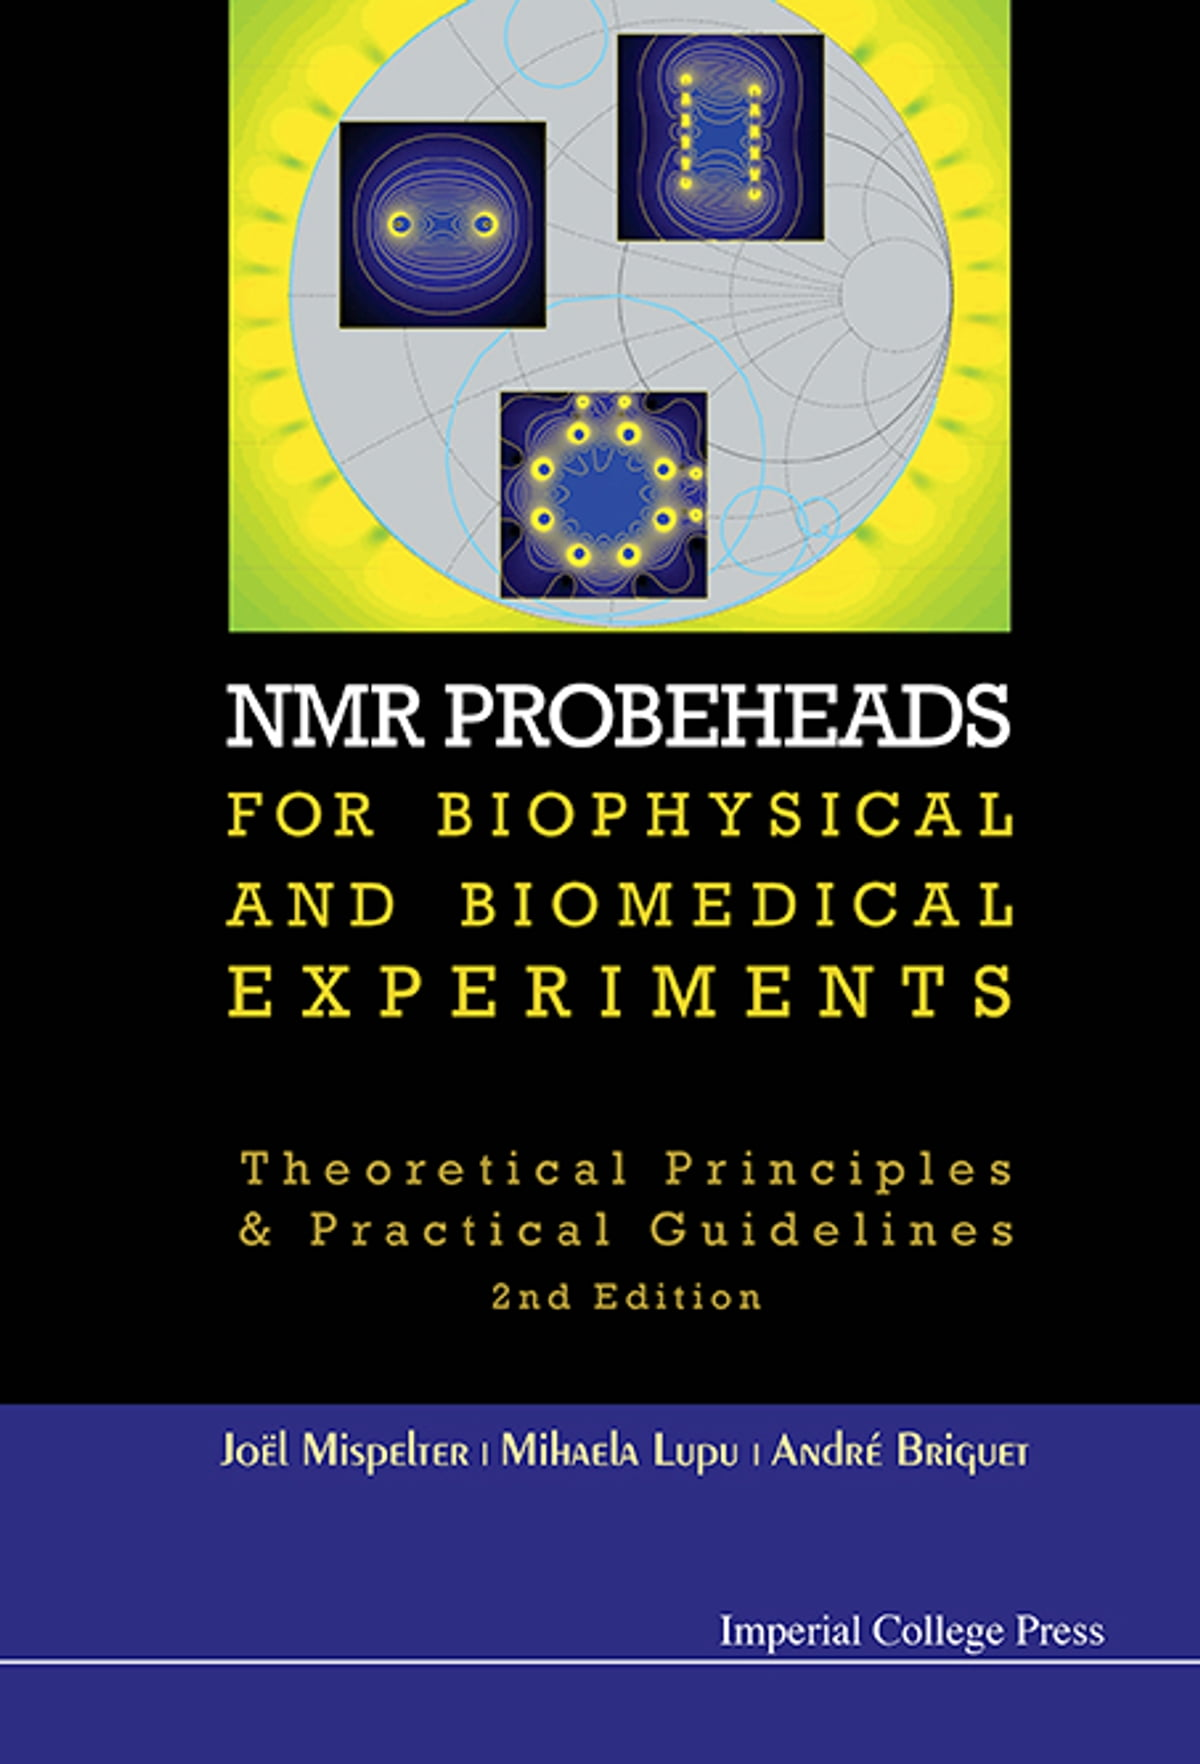 Fundamentals of power semiconductor devices ebook by b jayant nmr probeheads for biophysical and biomedical experiments theoretical principles and practical guidelines ebook by jol fandeluxe Images